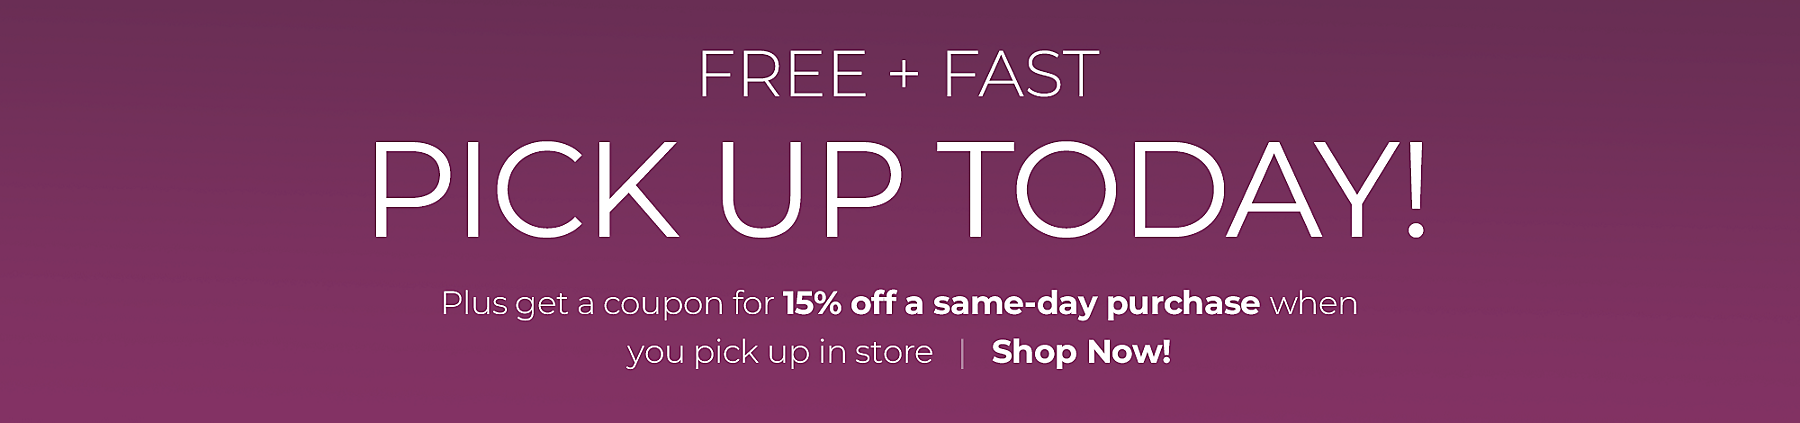 Free and fast - Pick up today! - plus get a coupon for 15% off a same-day purchase when you pick up in store - Shop Now